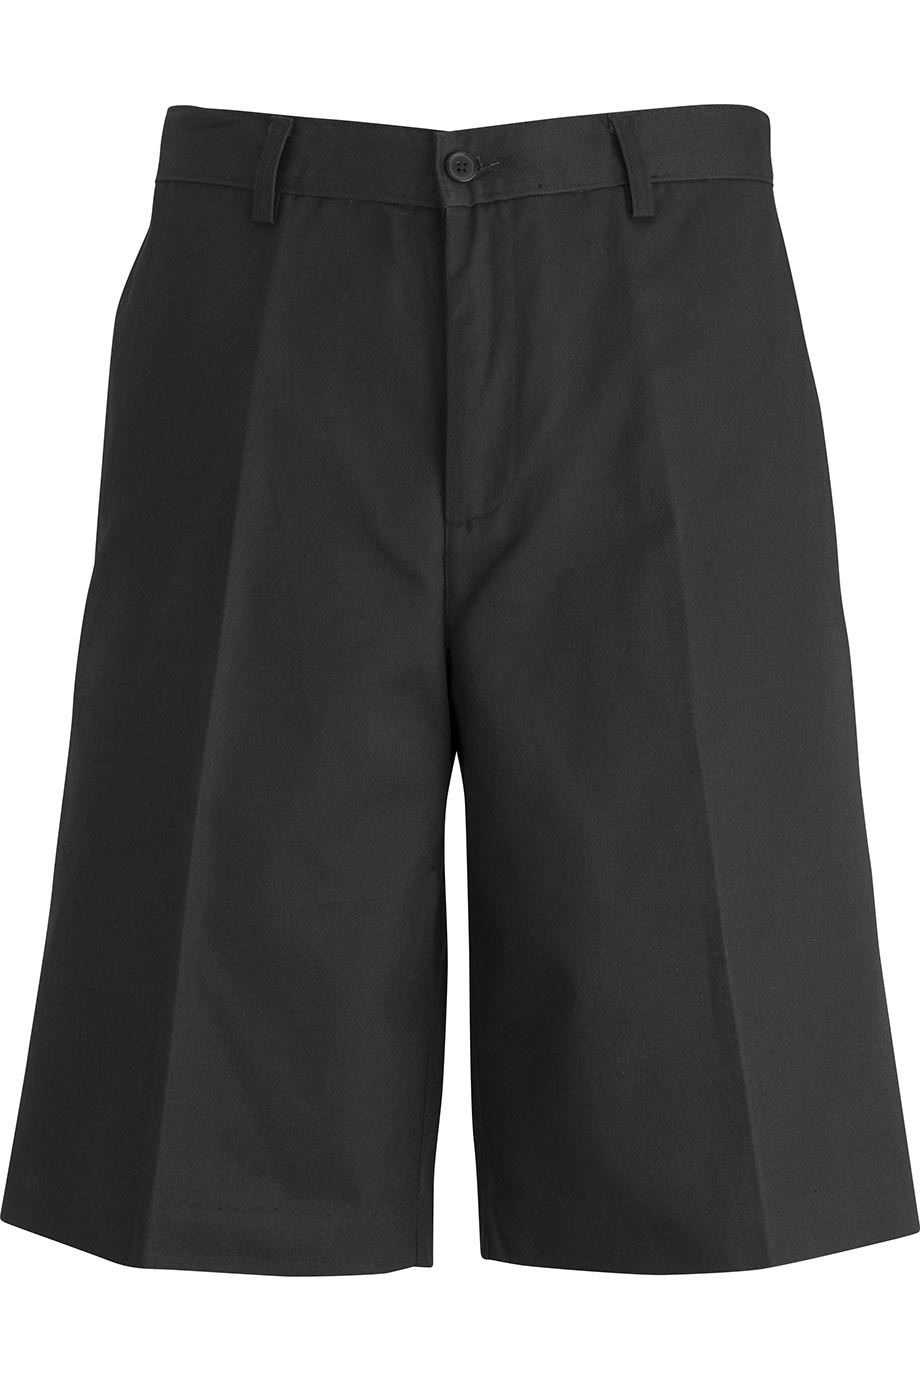 Coal Edwards Mens Utility Chino Flat Front Short